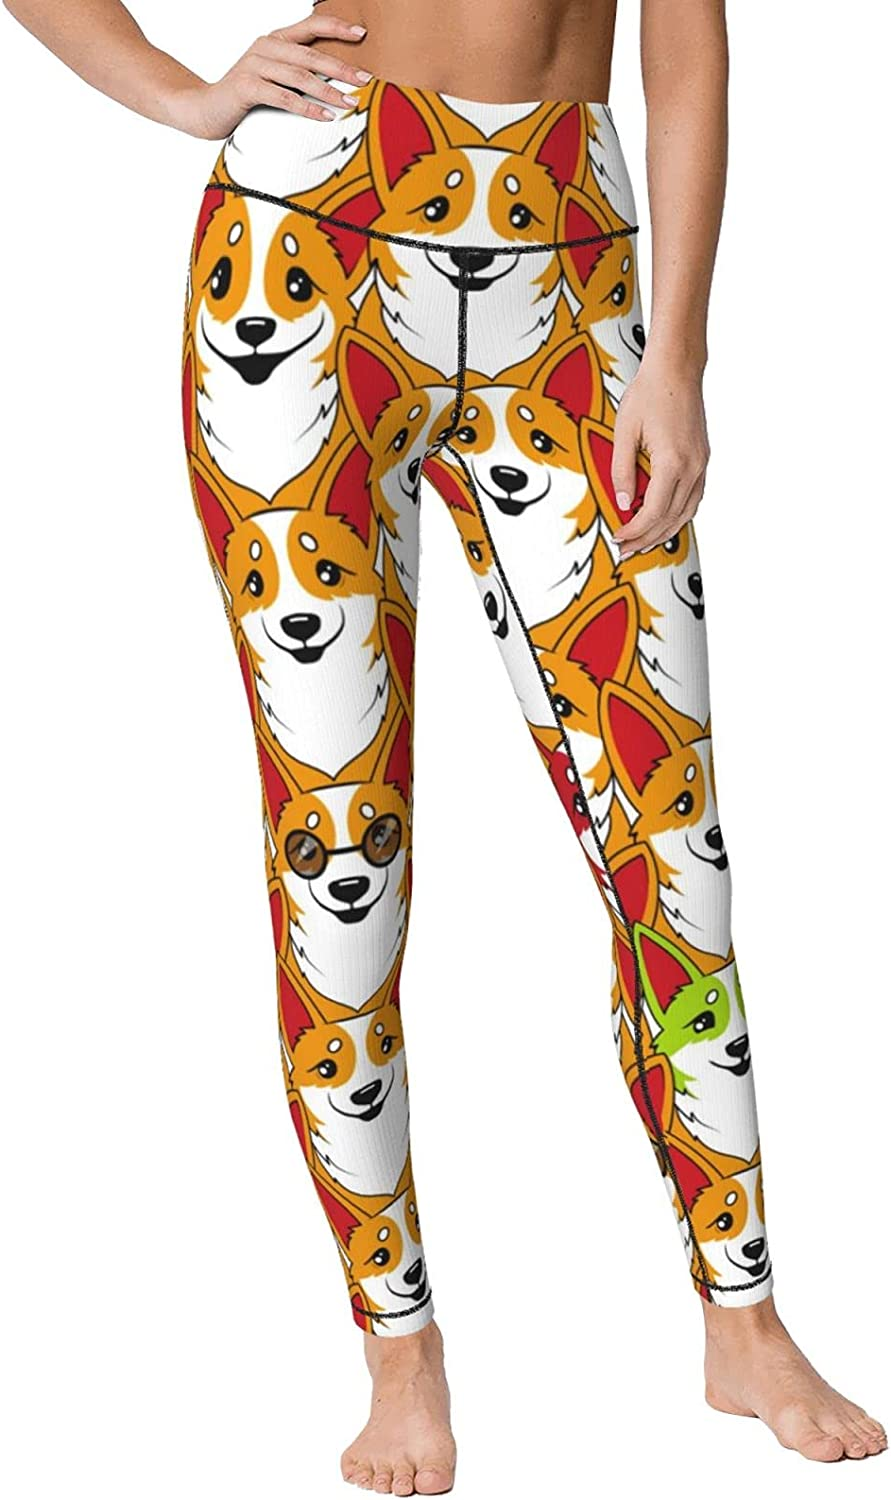 HSXOOW Colored Butterflies and Flowers Pants High Max 74% OFF Women's Boston Mall Yoga W